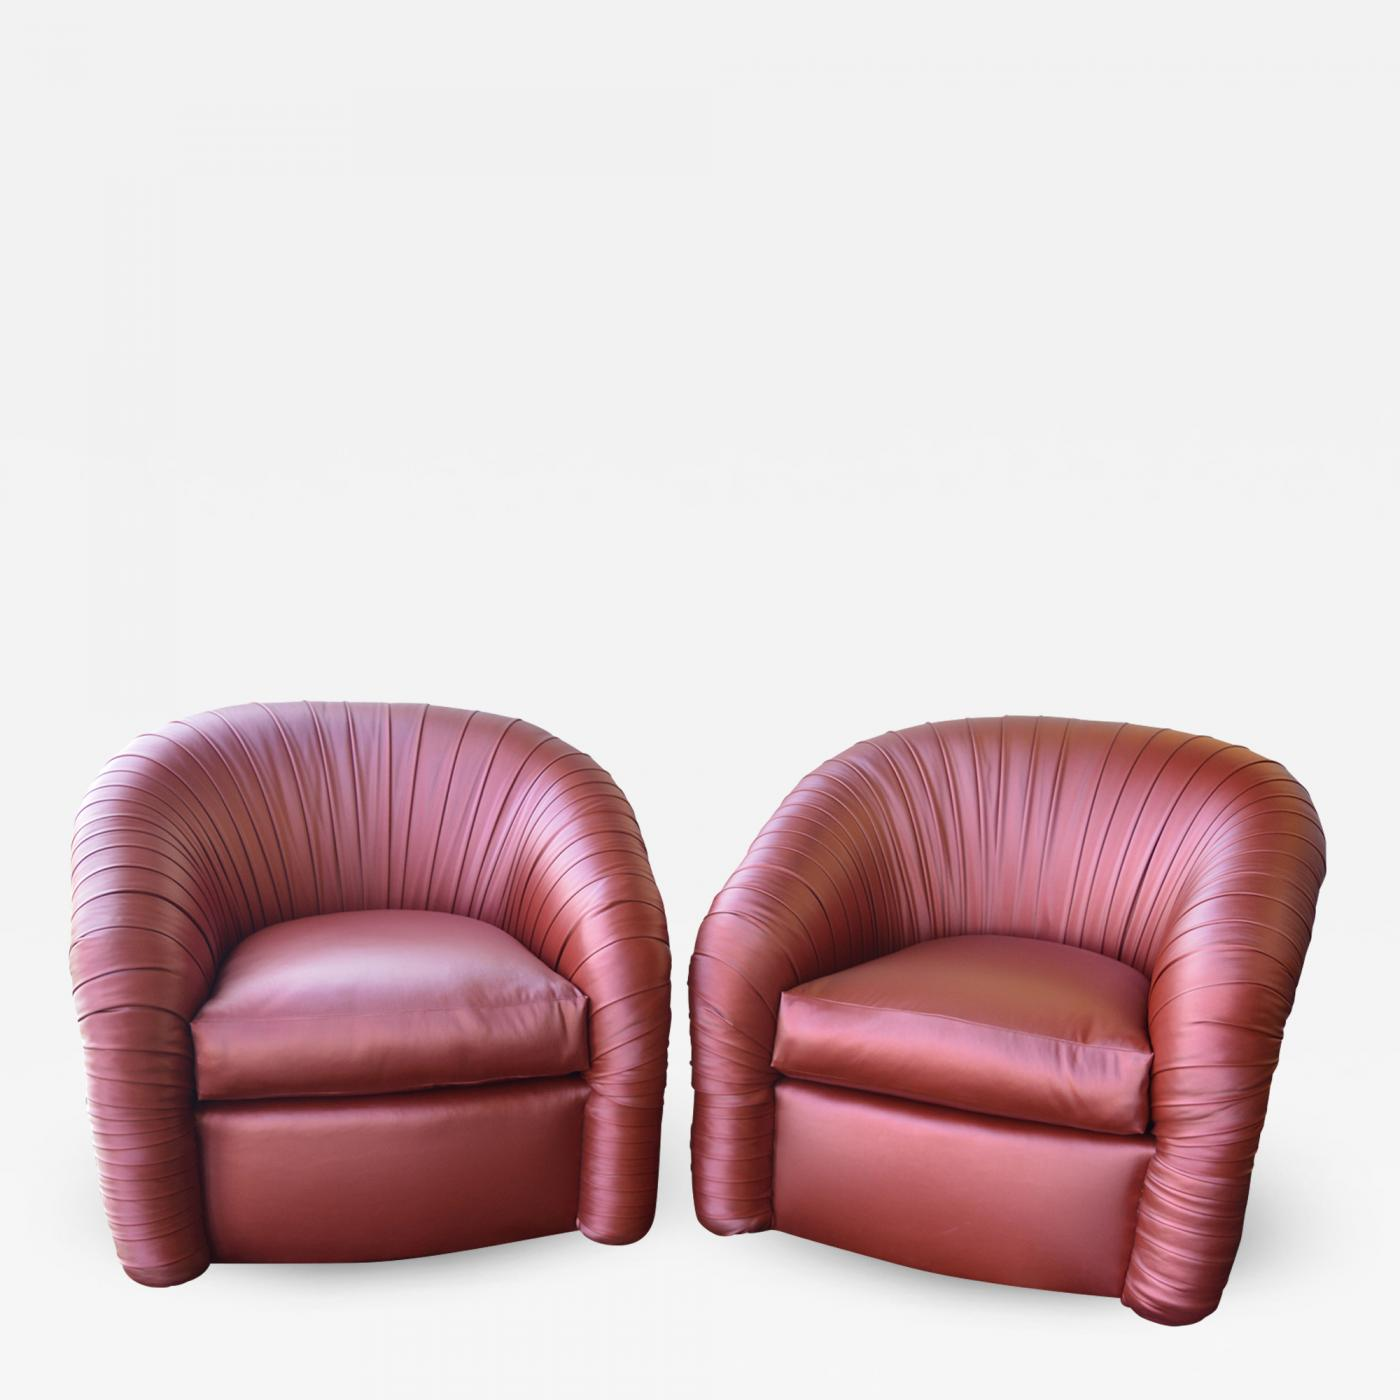 Strange Milo Baughman Pair Of Mid Century Modern Swivel Chairs Caraccident5 Cool Chair Designs And Ideas Caraccident5Info